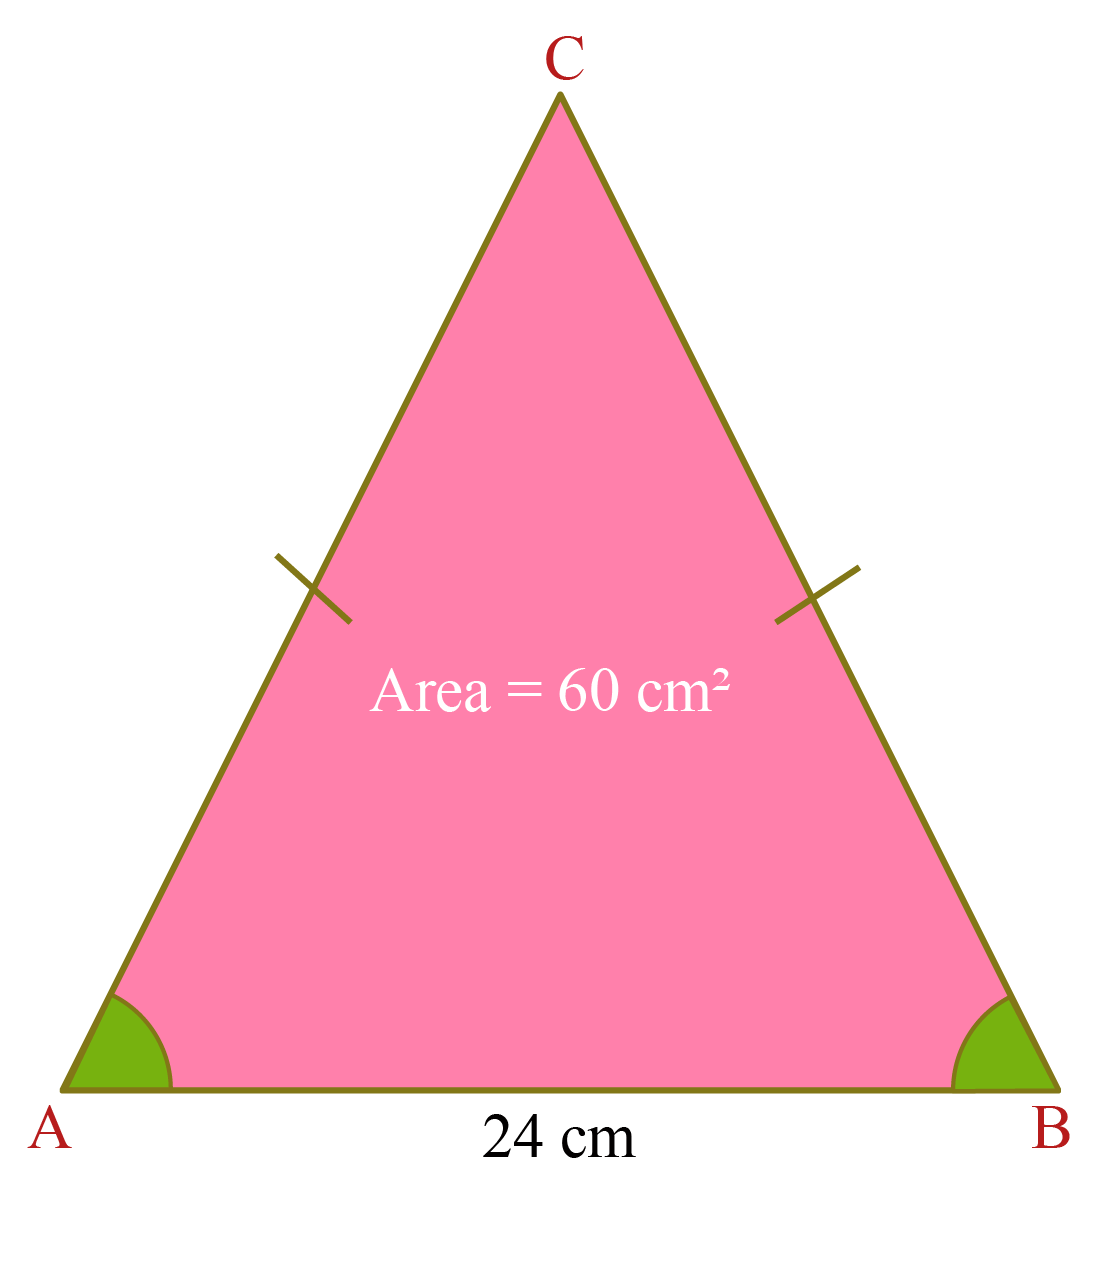 Isosceles triangle solved example